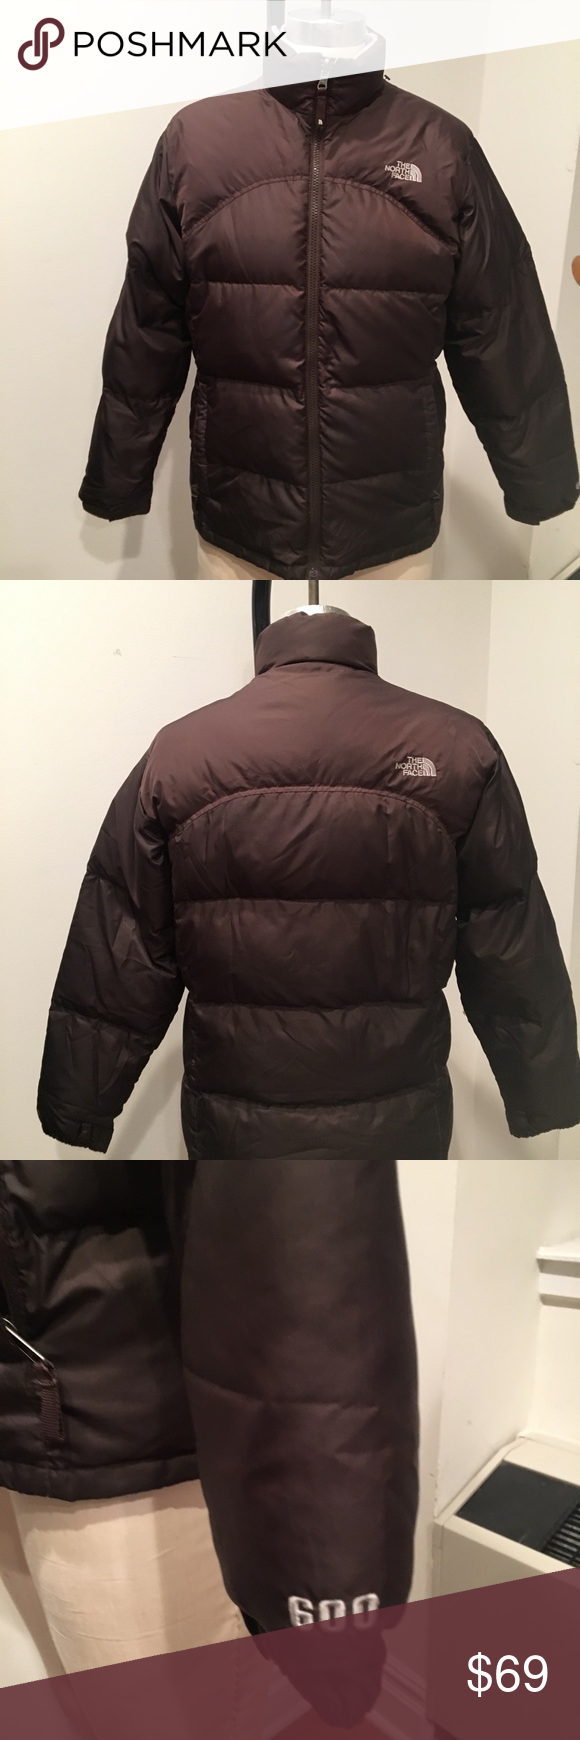 The North Face 600 Girls Goose Down Brown Puffer Brown Puffer Brown Puffer Jacket The North Face [ 1740 x 580 Pixel ]